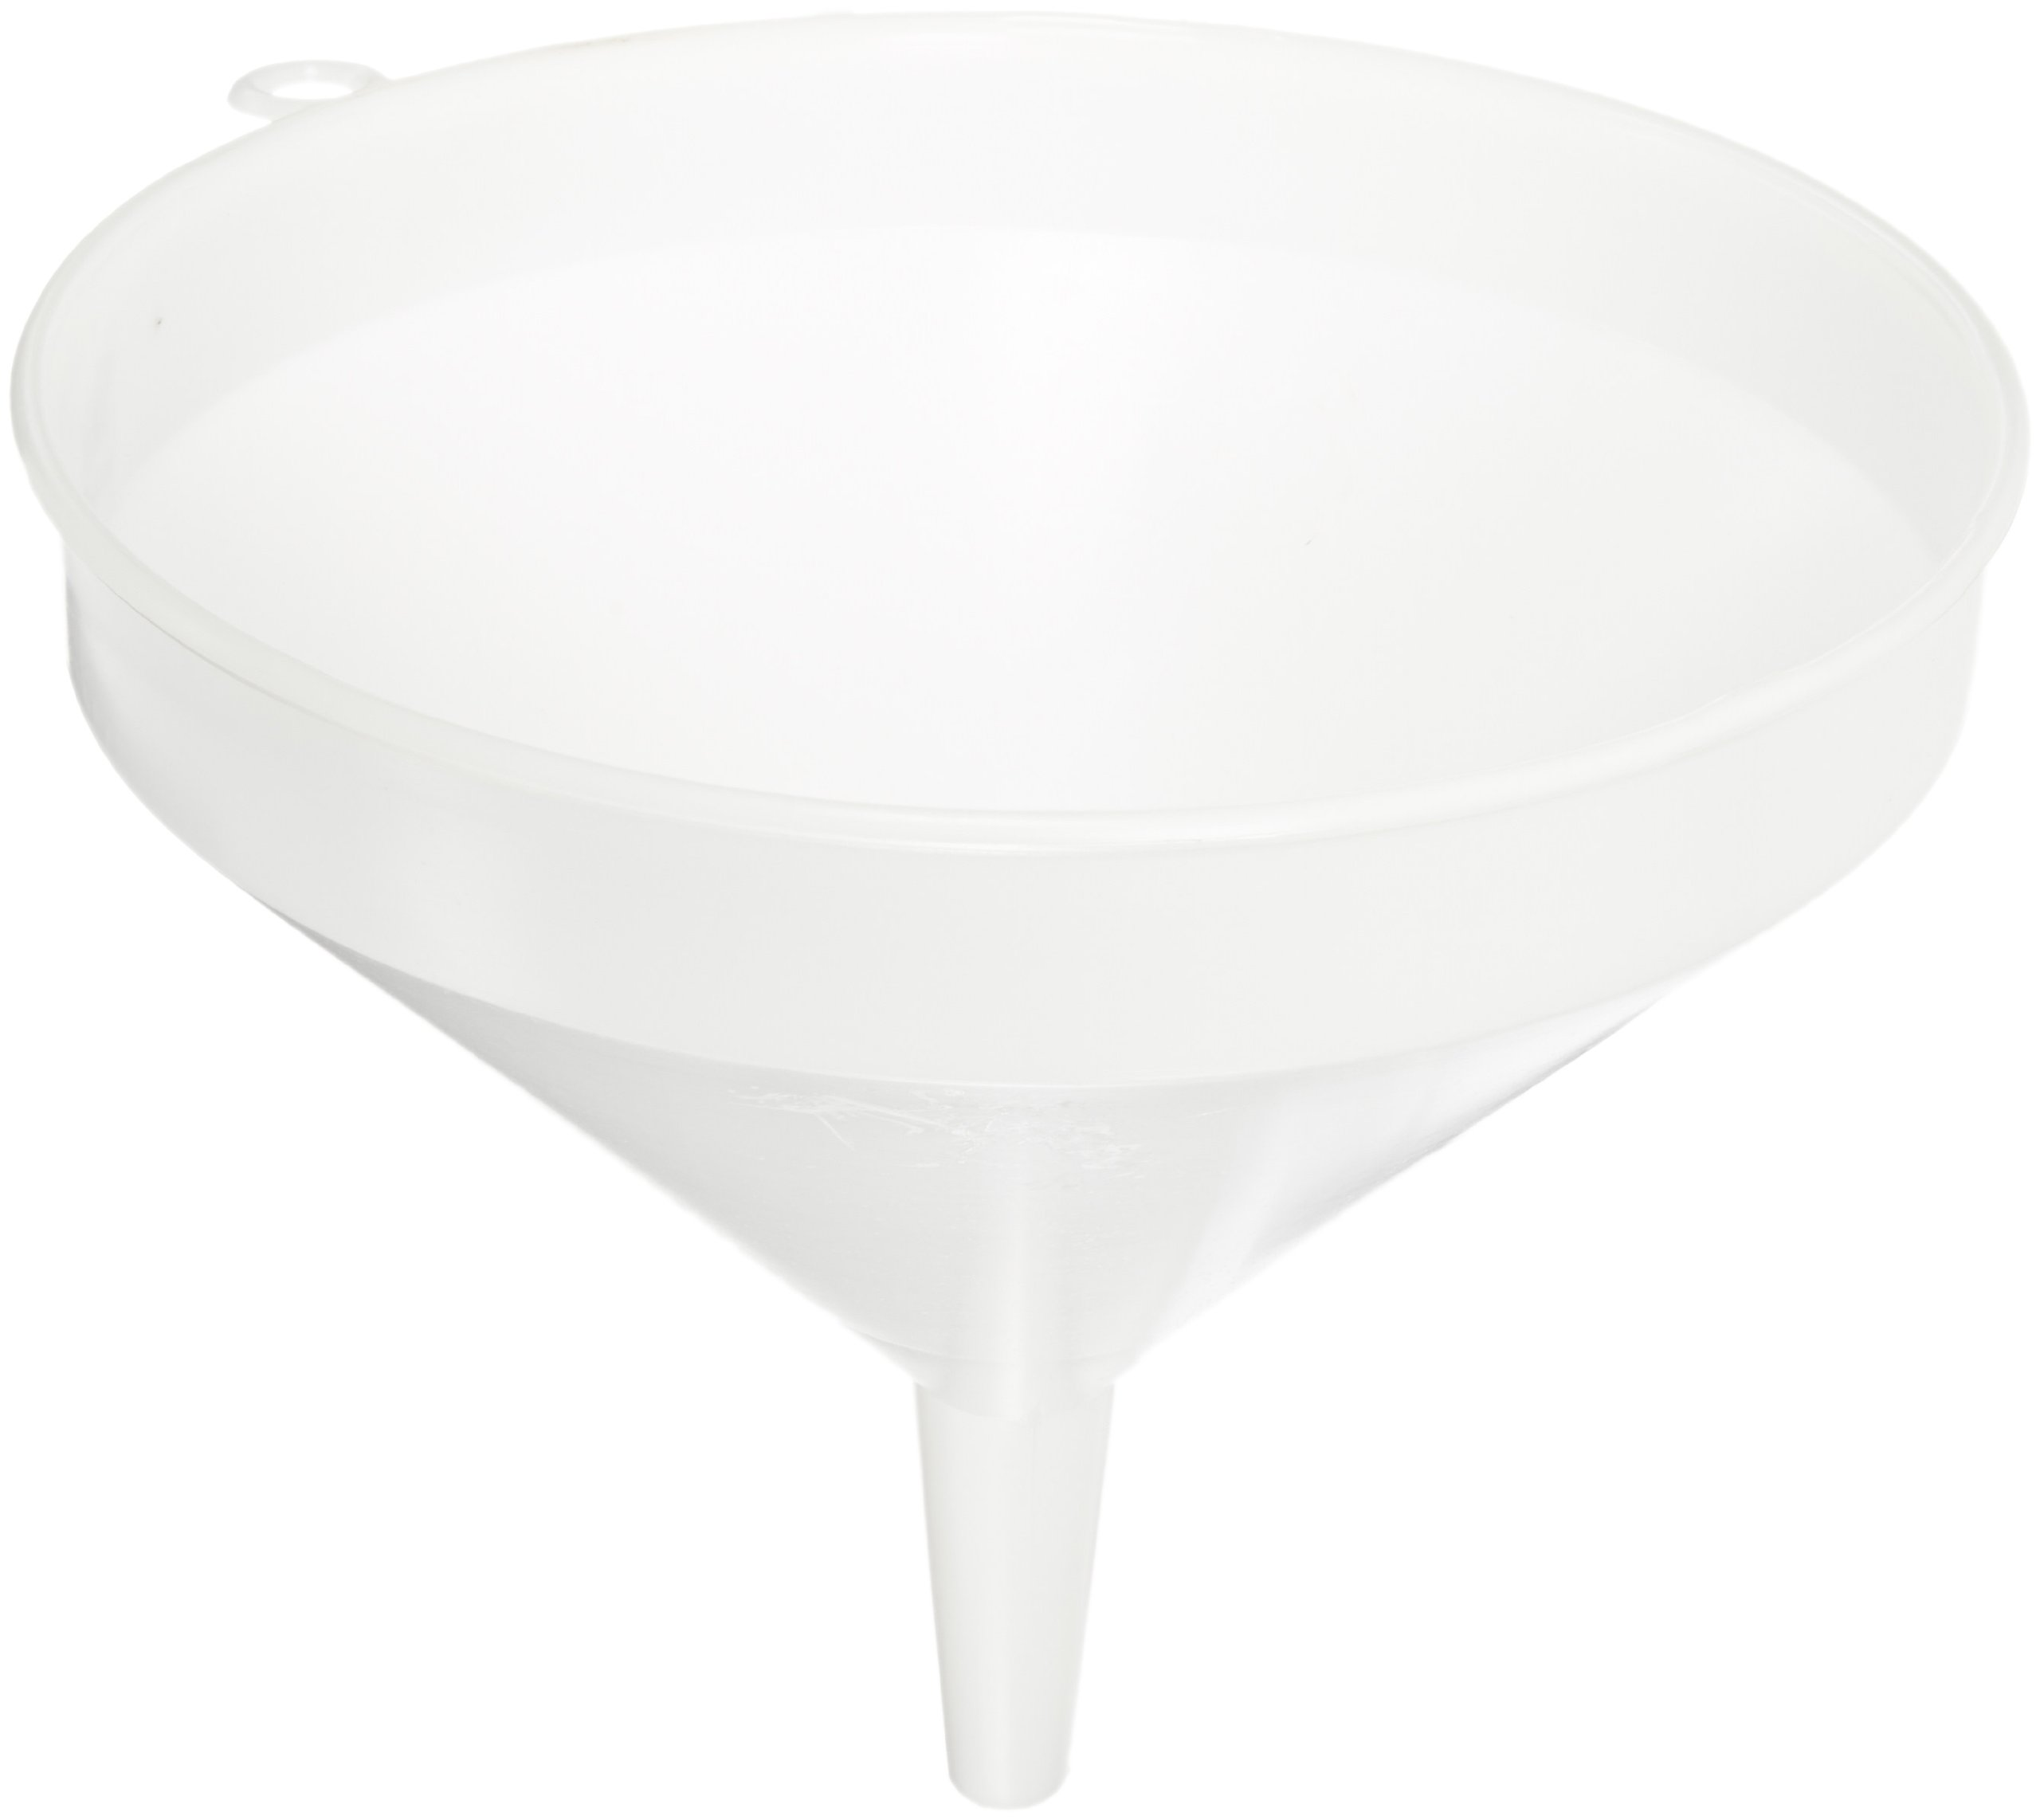 Vitlab HDPE Funnel with Handle, 430mm D x 420mm L